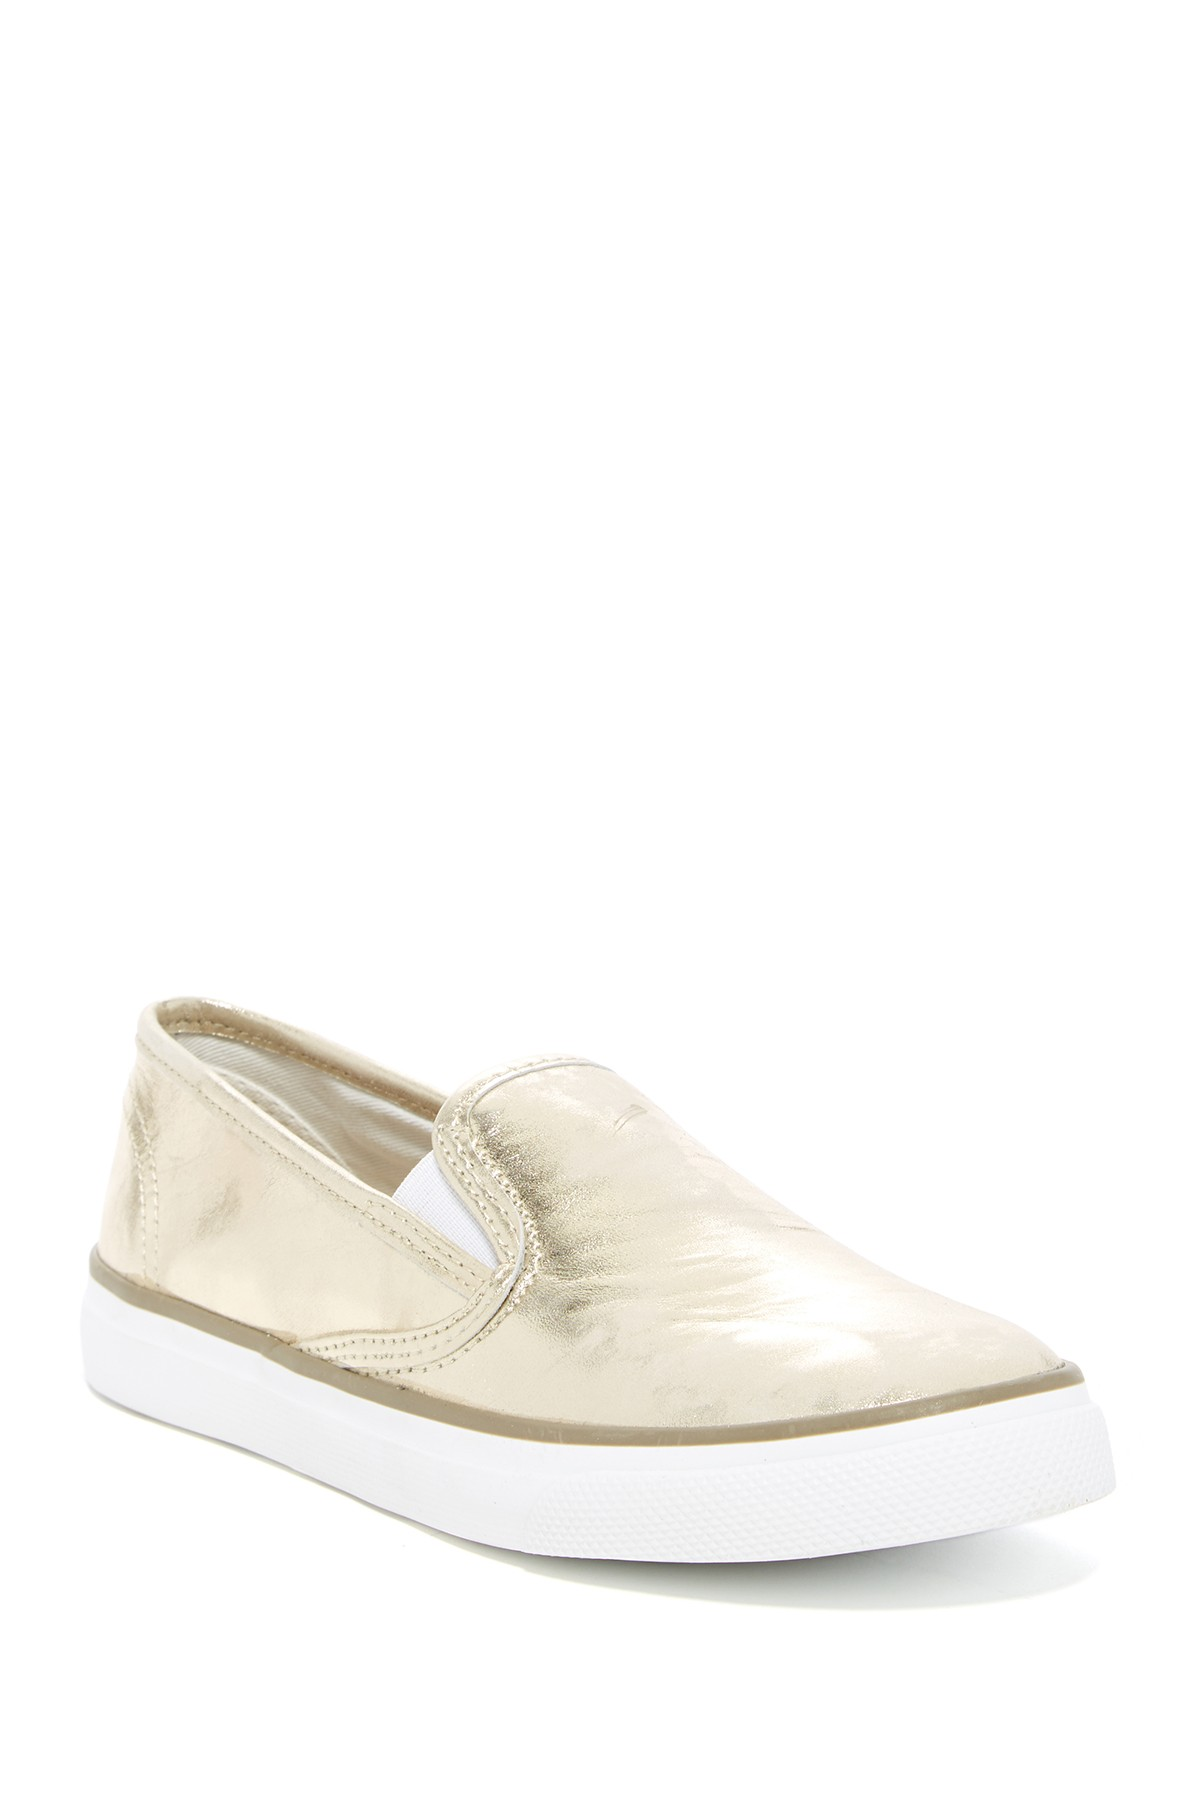 Sperry Seaside Metallic Slip-On Sneaker ($49.97). It's time to celebrate Momma.  Here is our Nordie's gift guide for items under $50! (Image: Nordstrom)